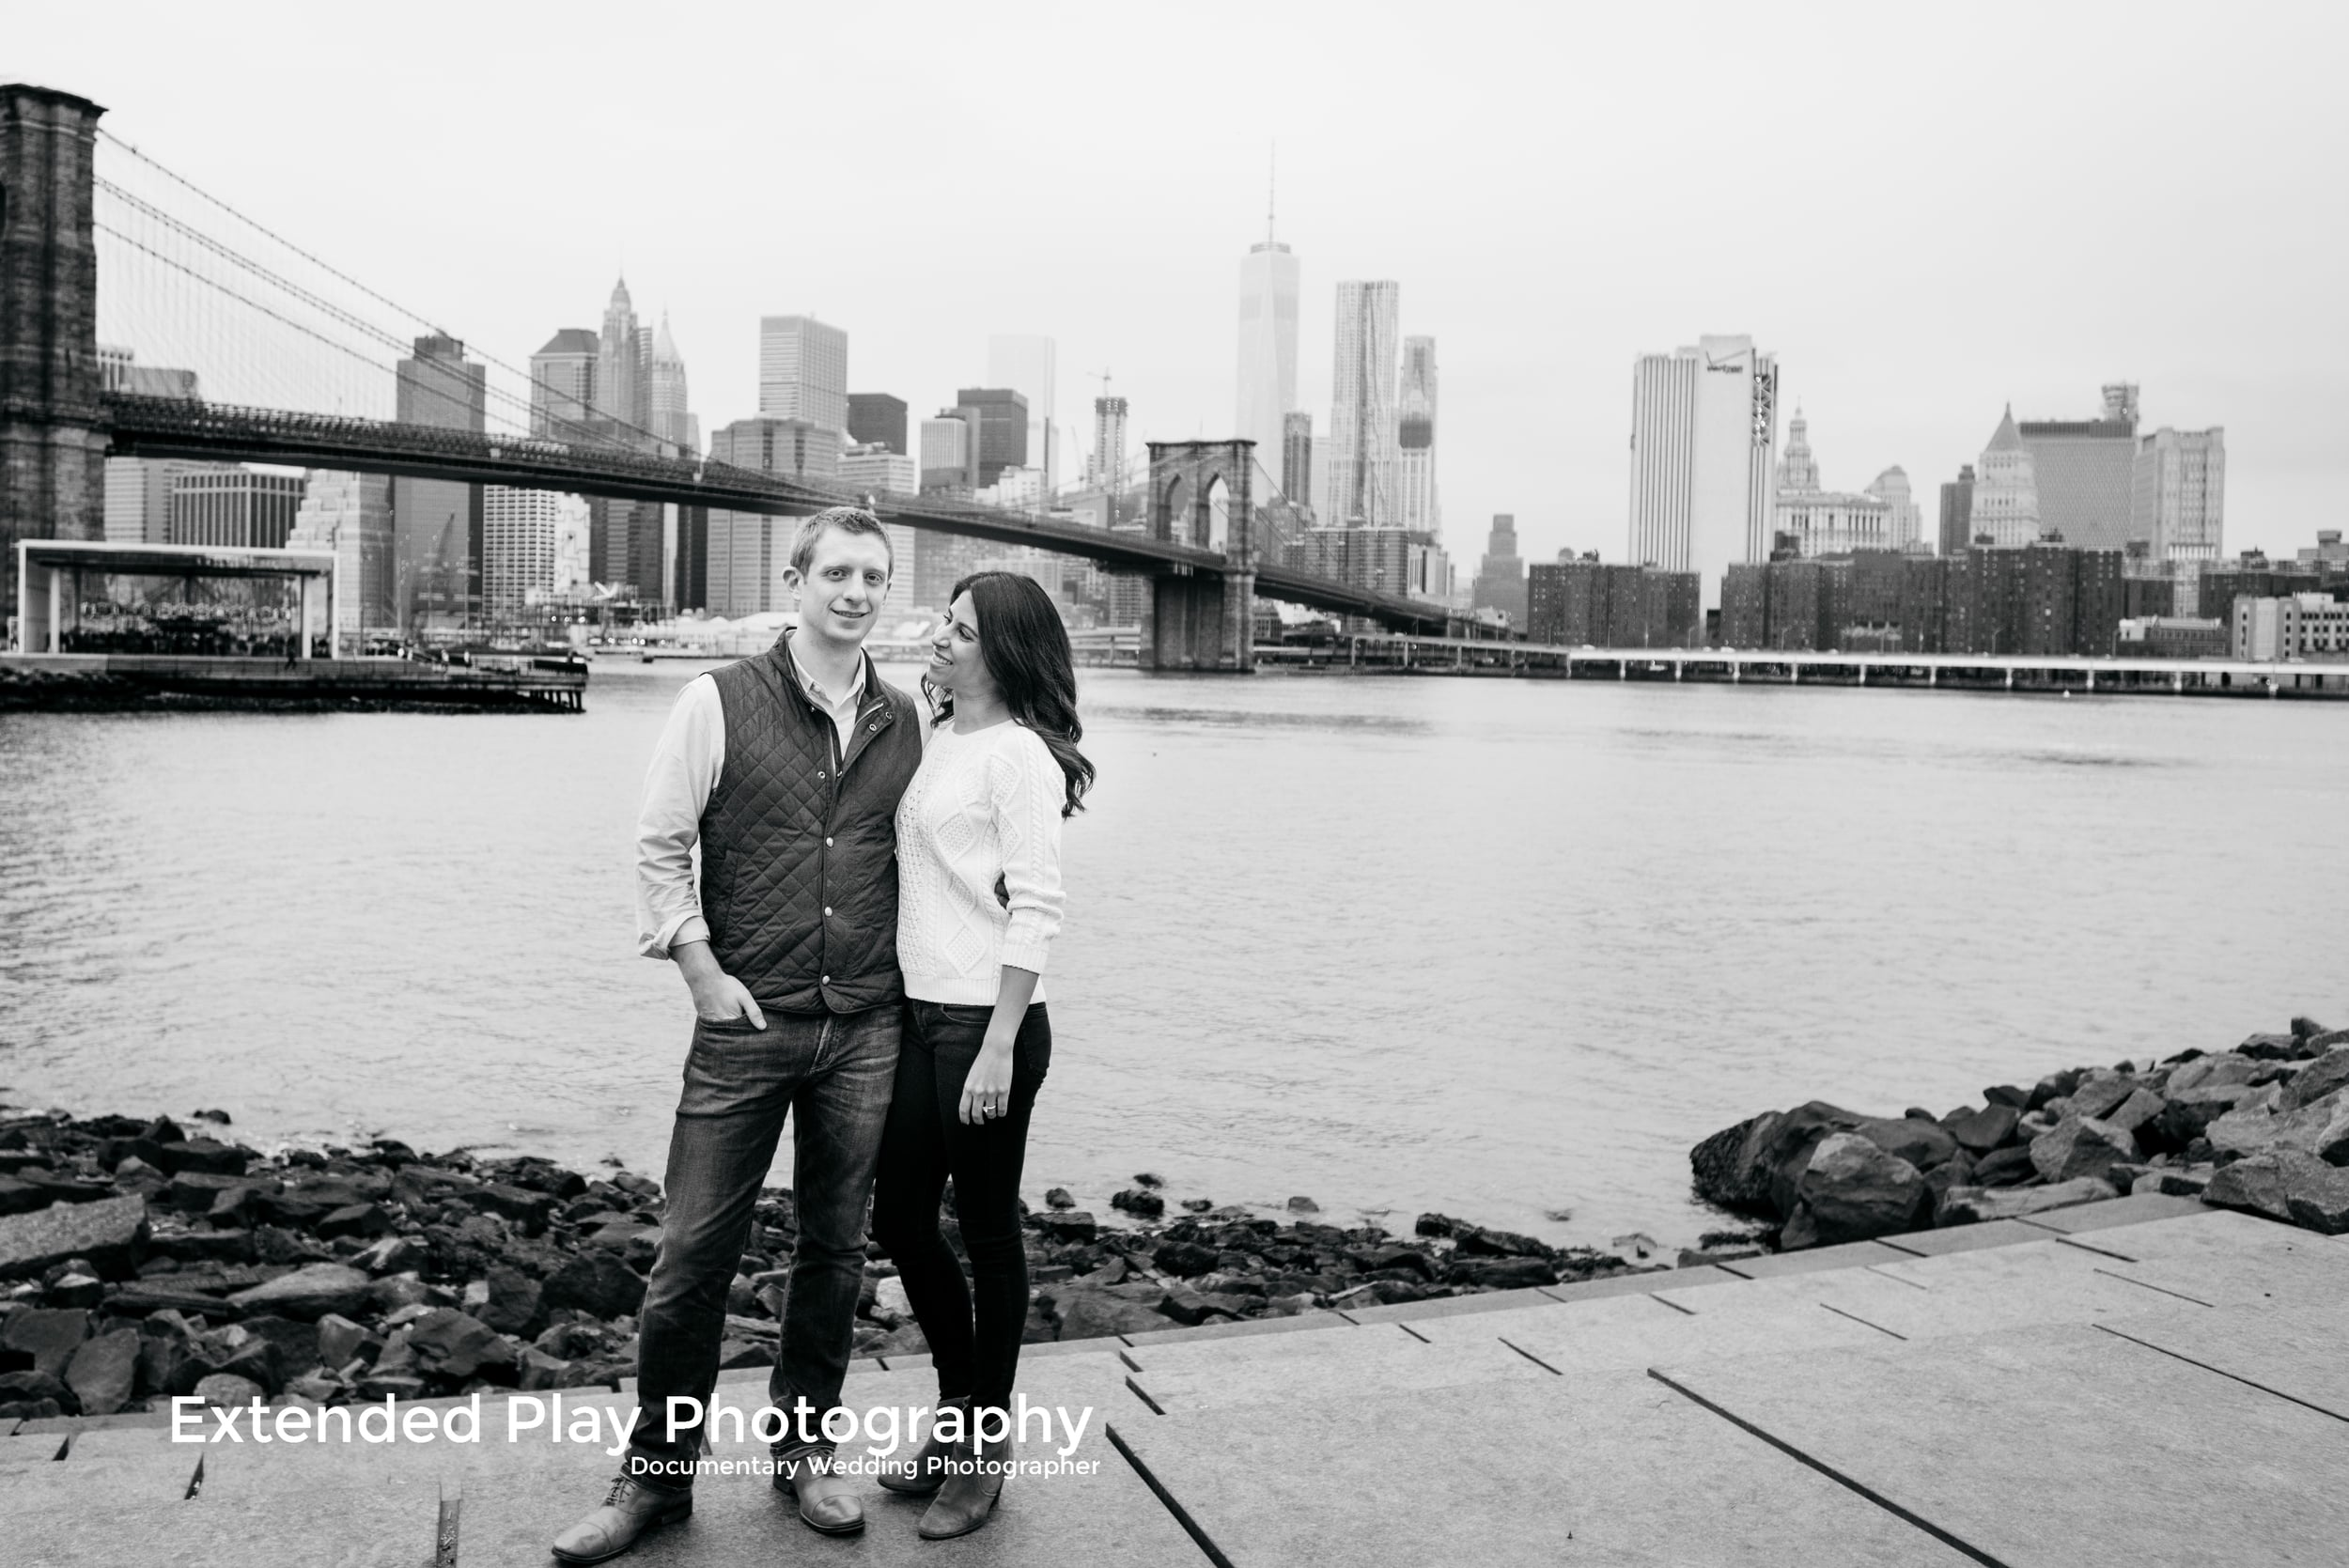 Extended Play Photography New York City Engagement-6.jpg